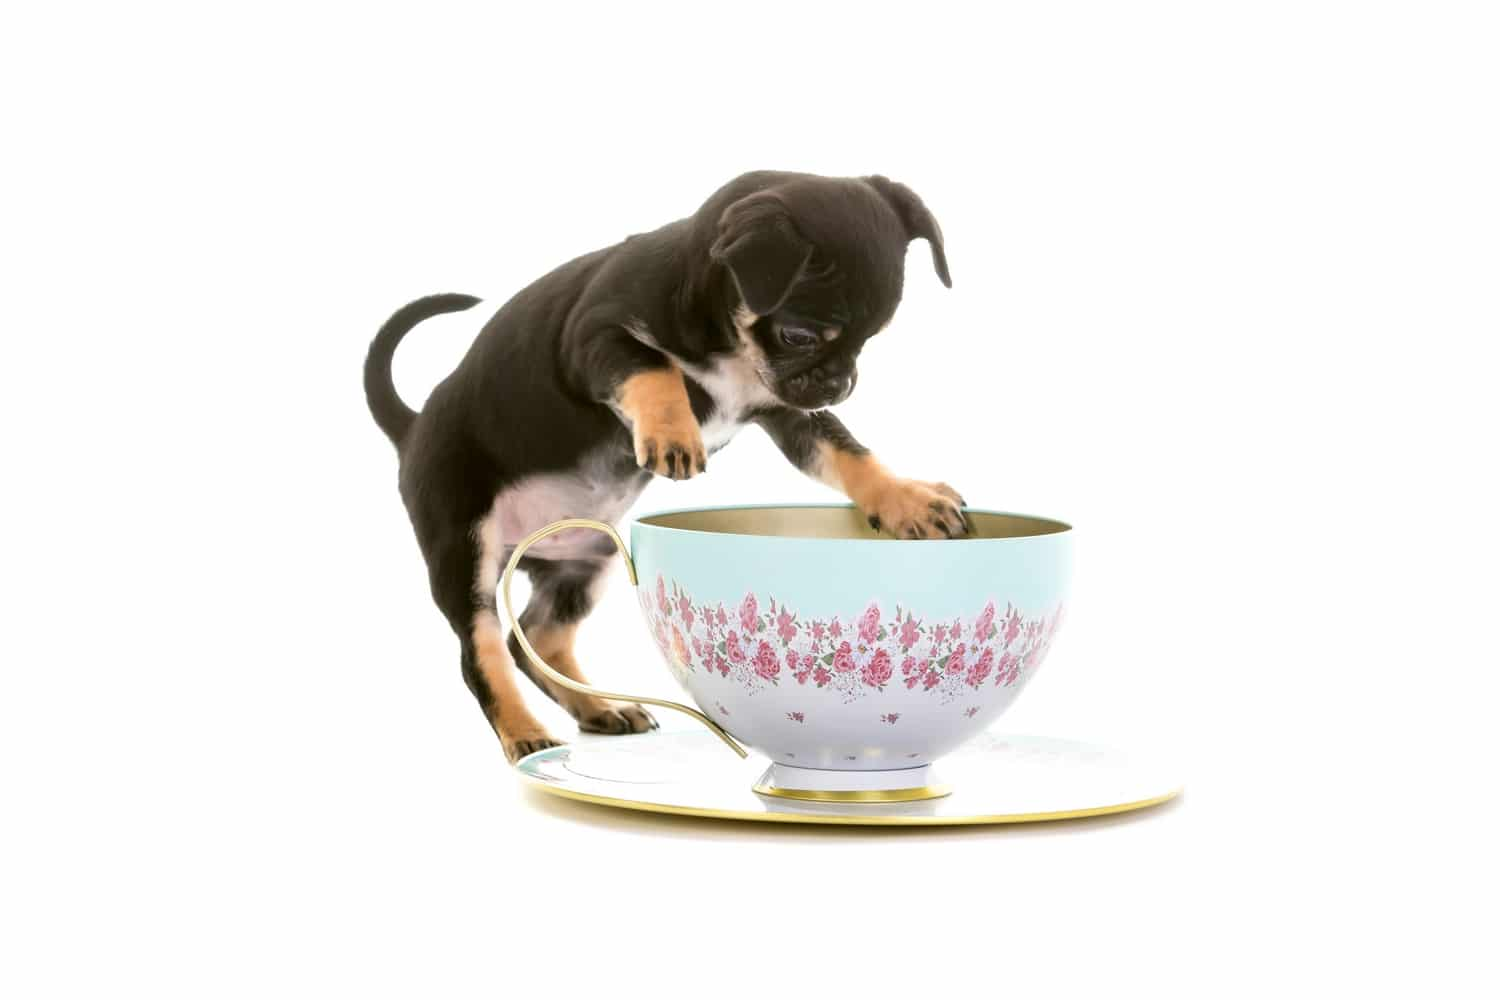 Chug dog getting into a cup and saucer